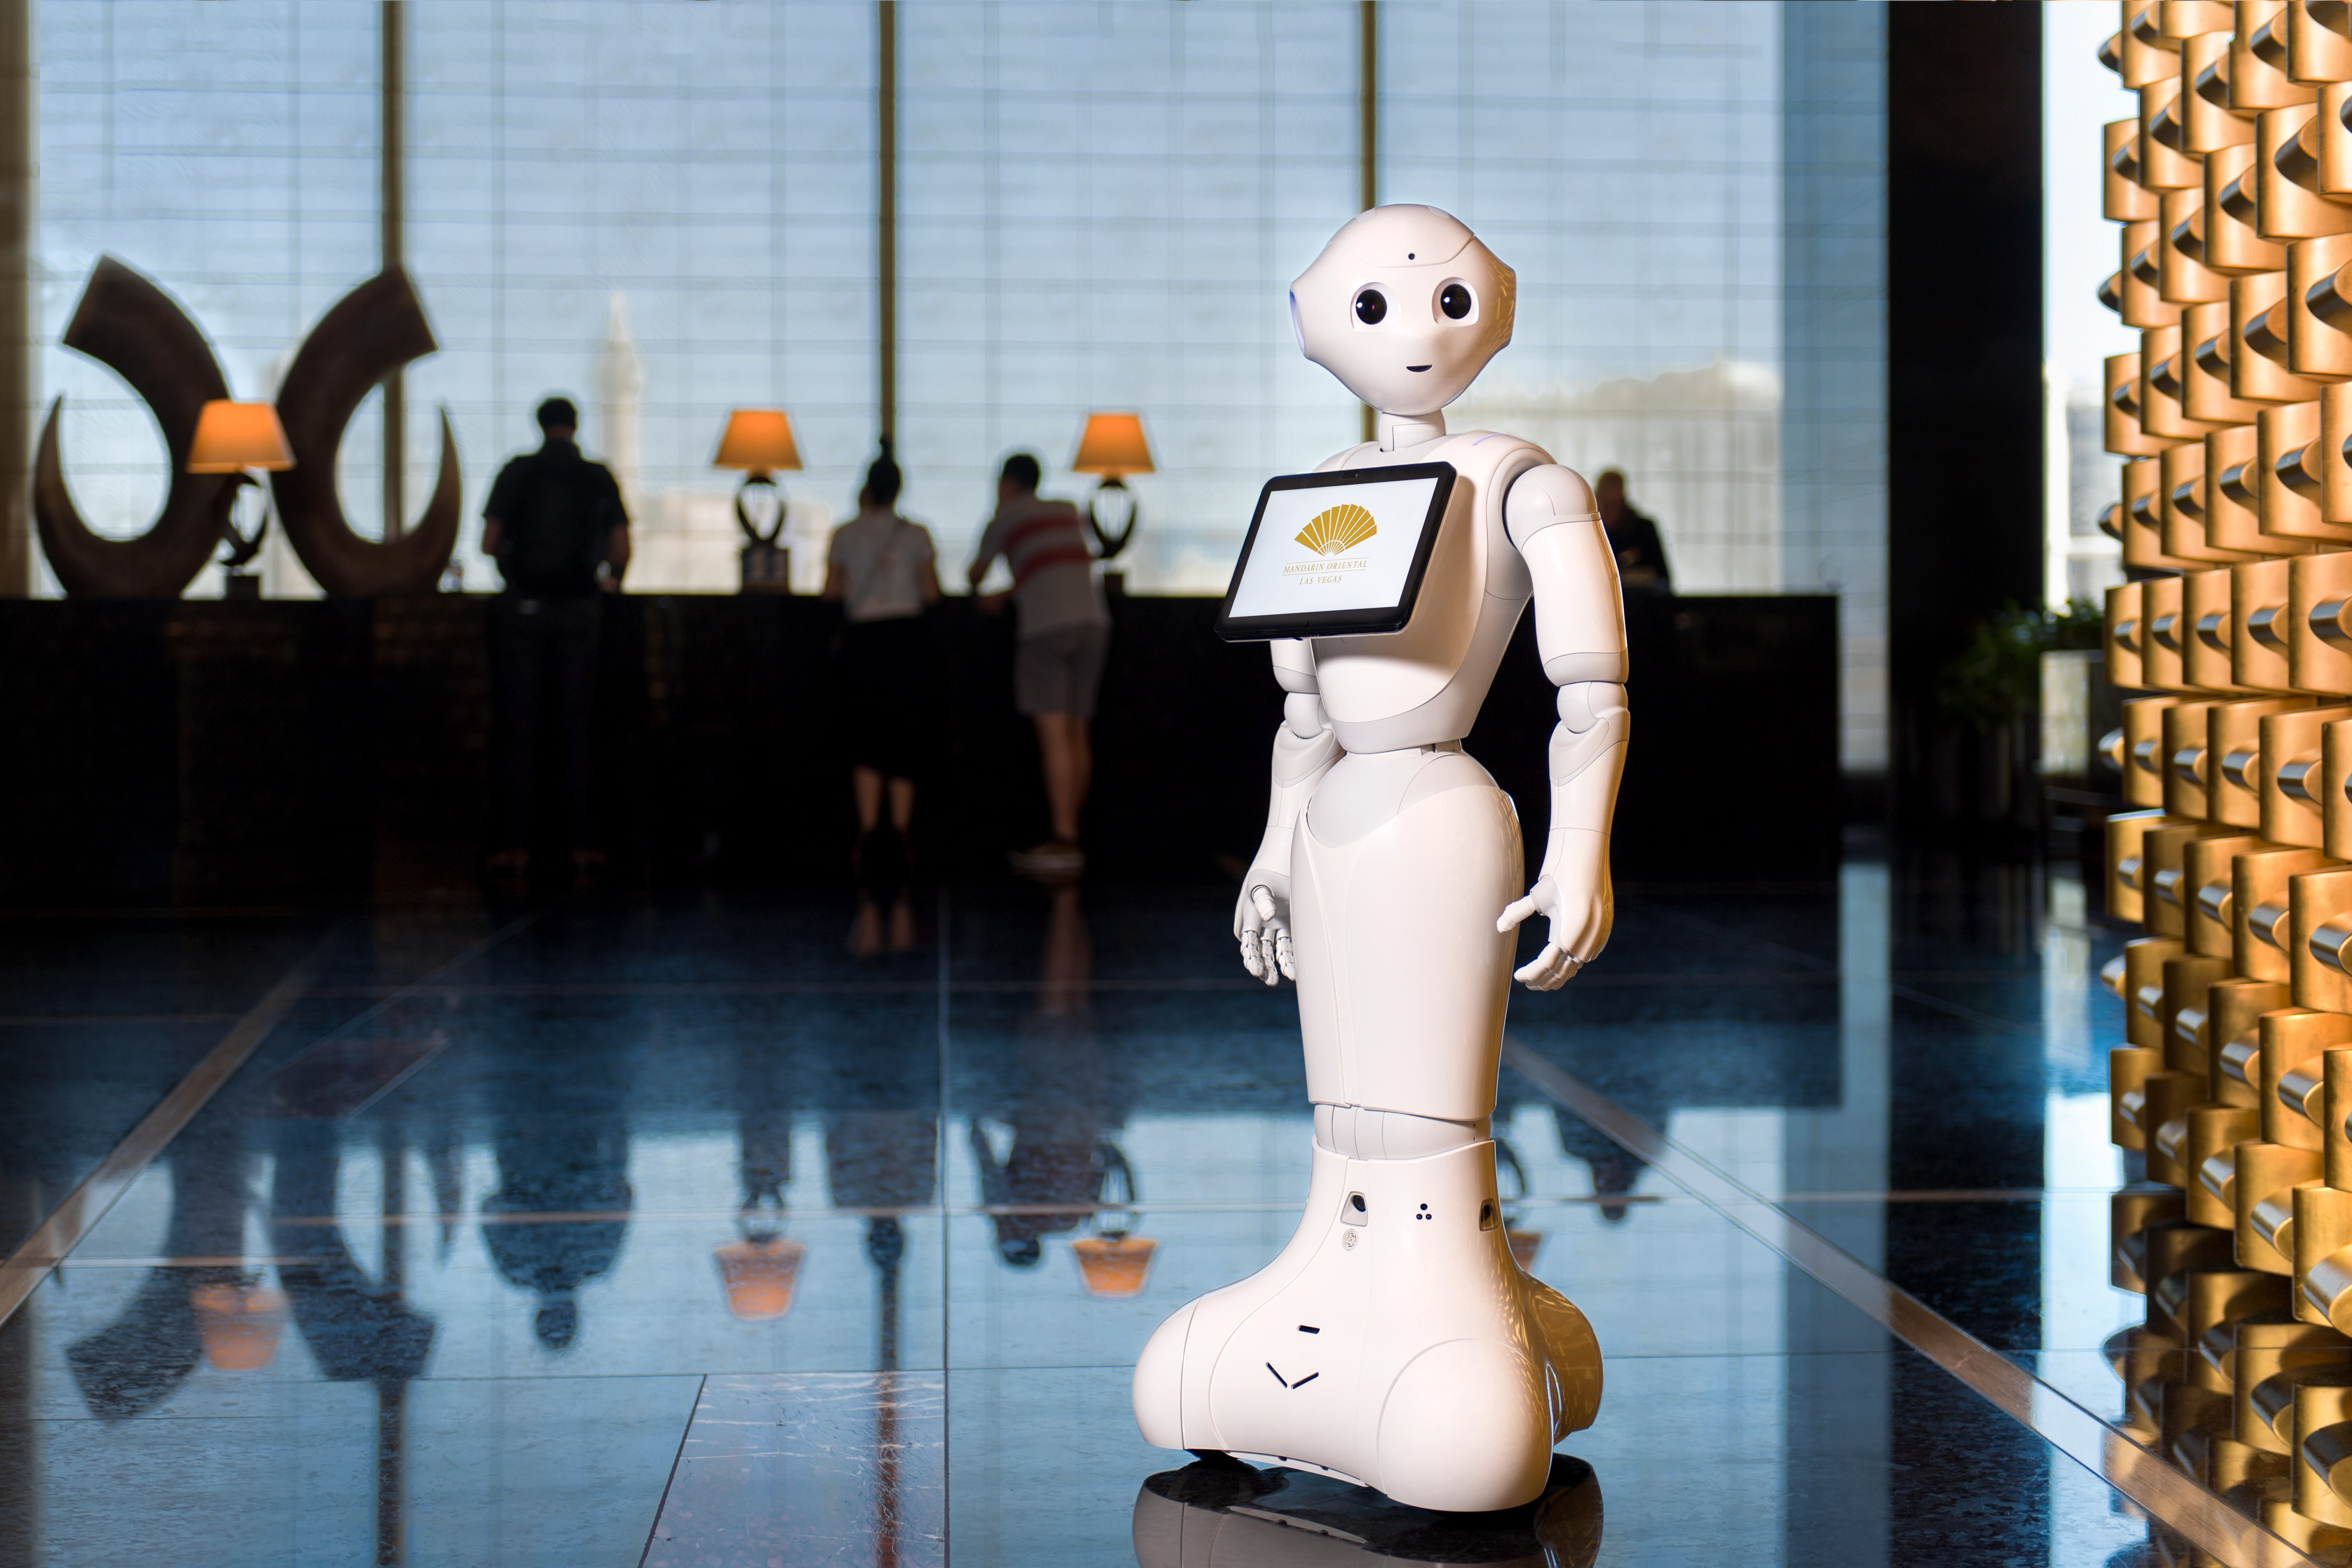 Pepper Humanoid robot helps out at hotels in two of the nation's most-visited destinations